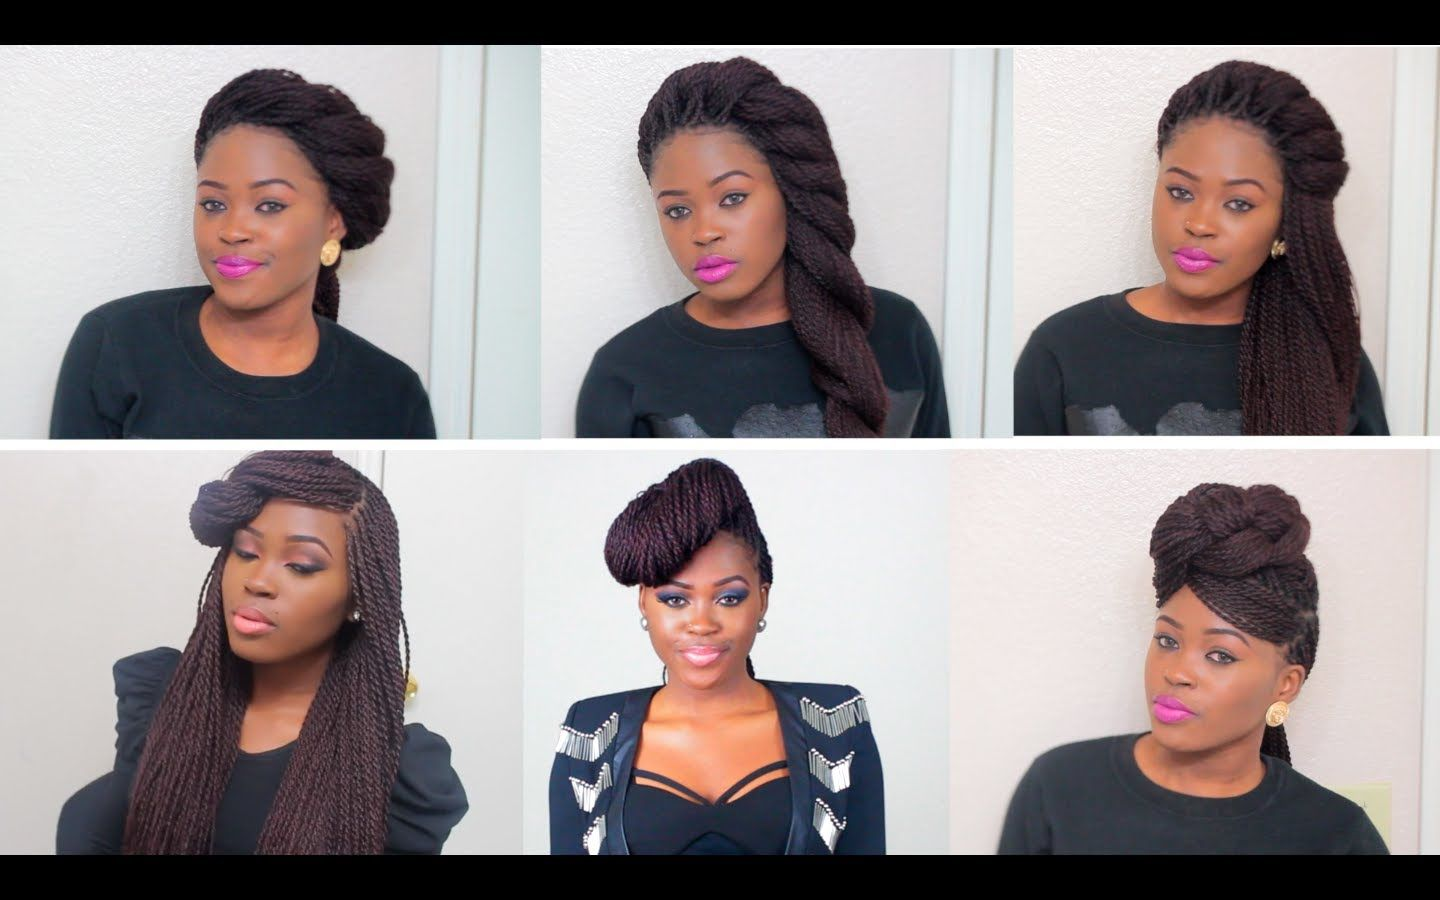 Pin By Danielle L Green On Crowning Glory Box Braids Styling Twist Braids Natural Hair Styles